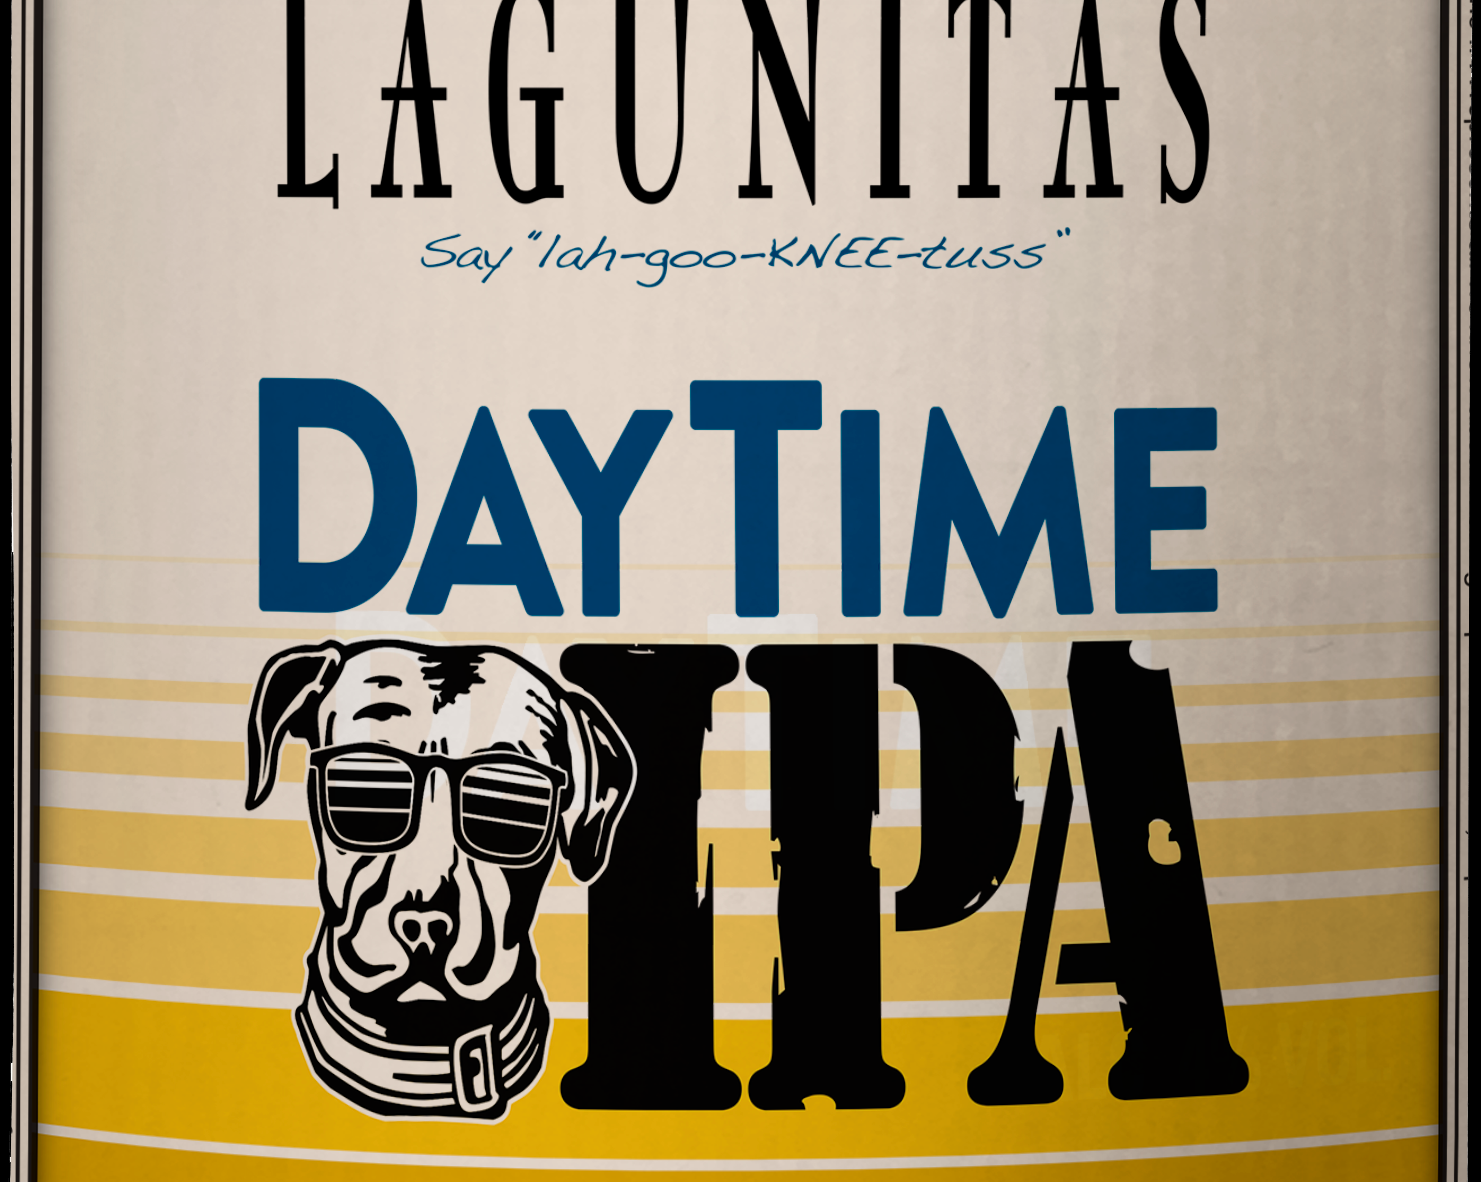 Lagunitas Session IPA